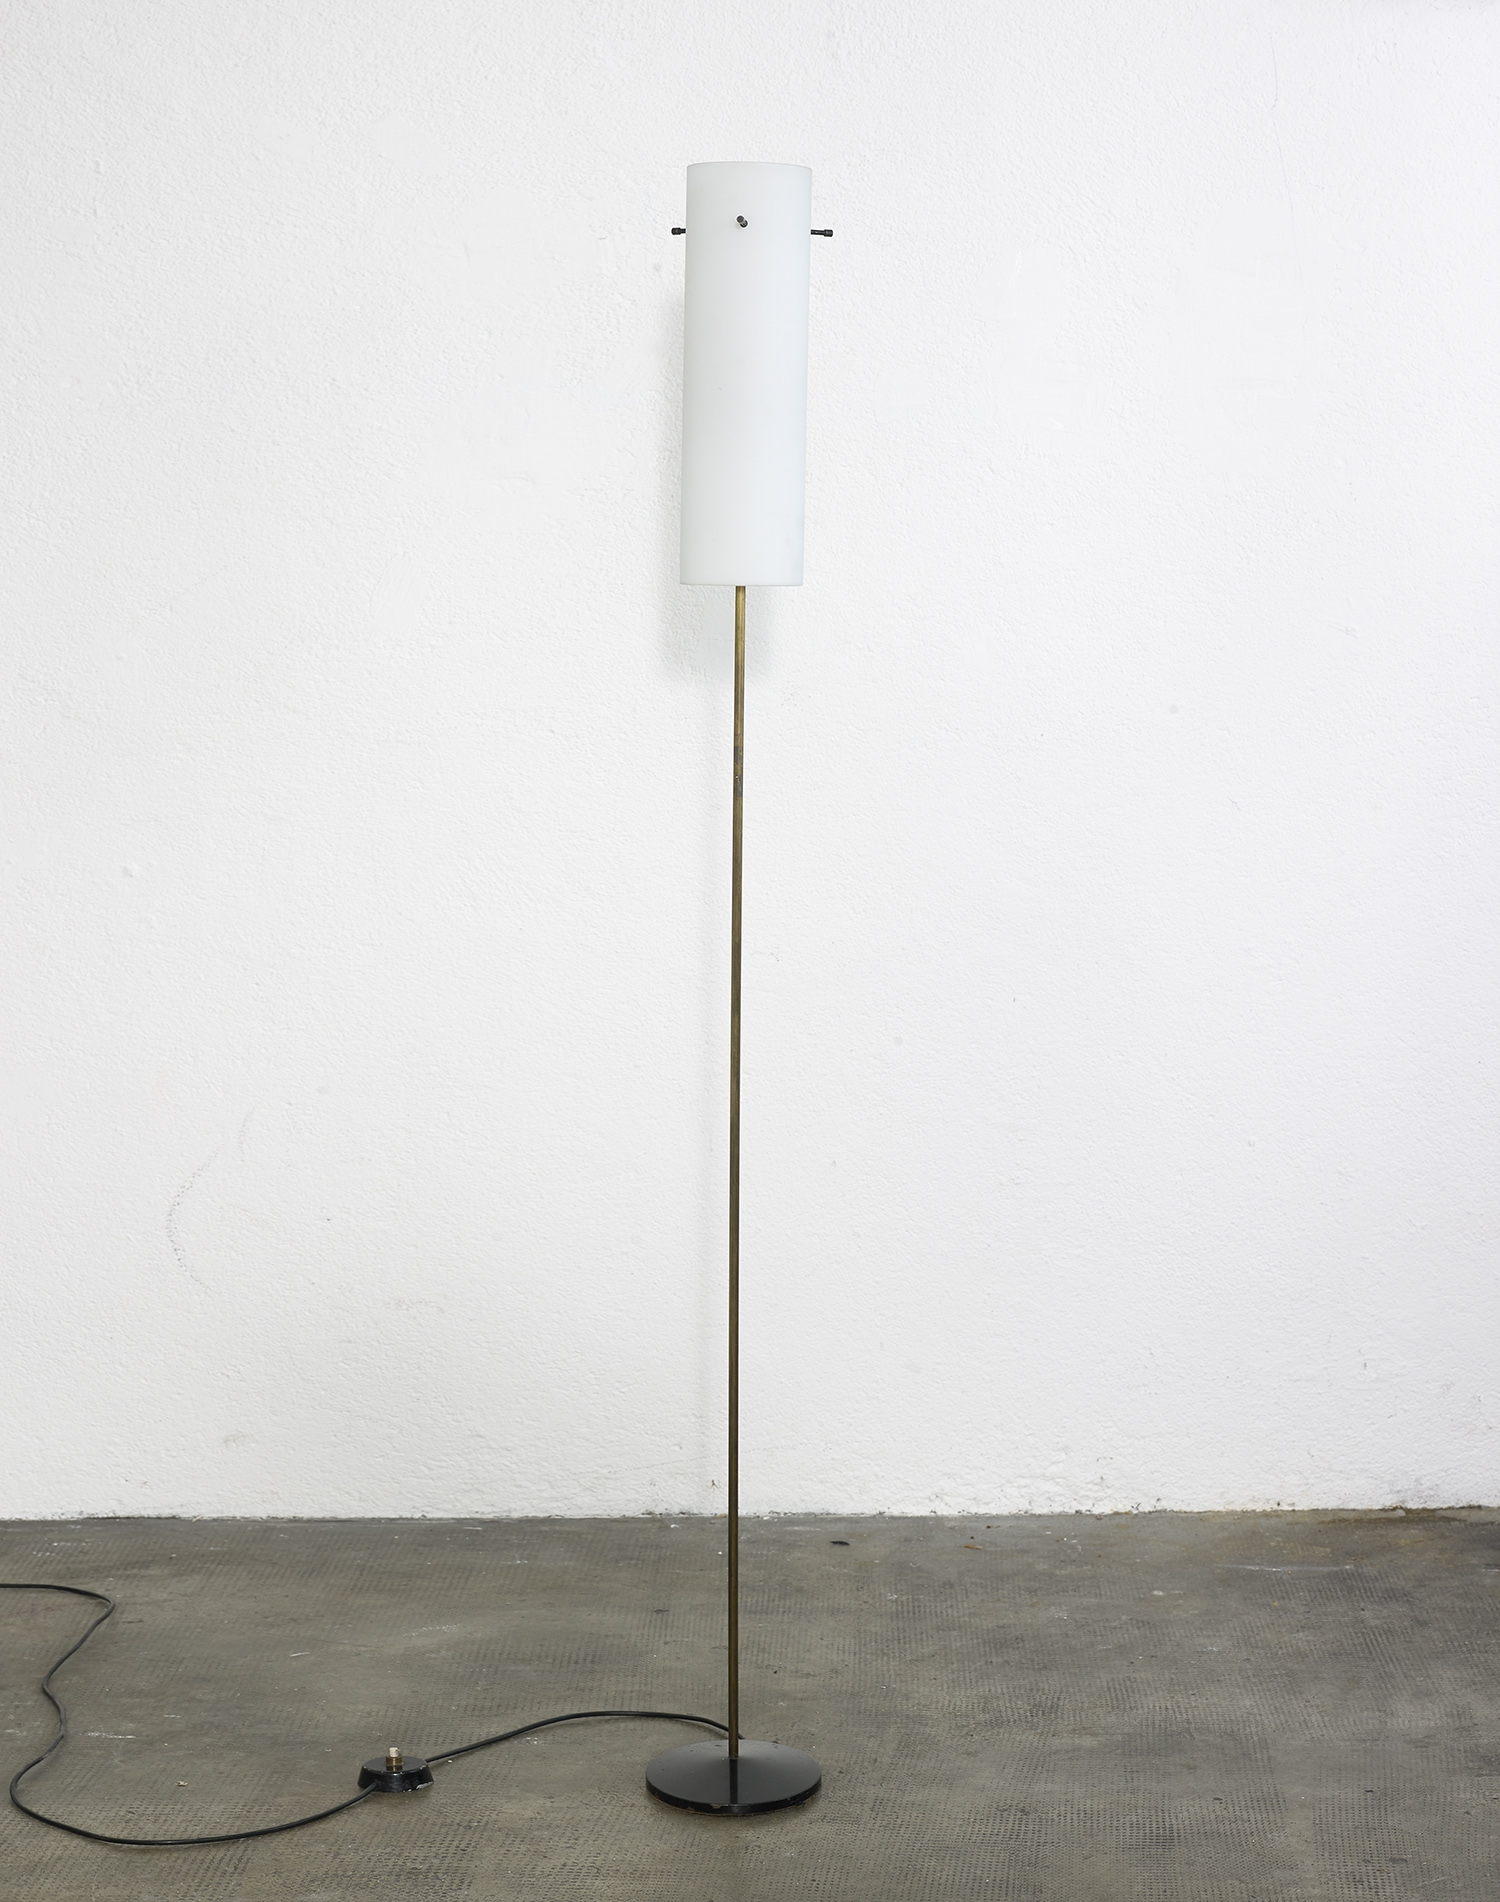 floor-lamp-italy-1960-image-01